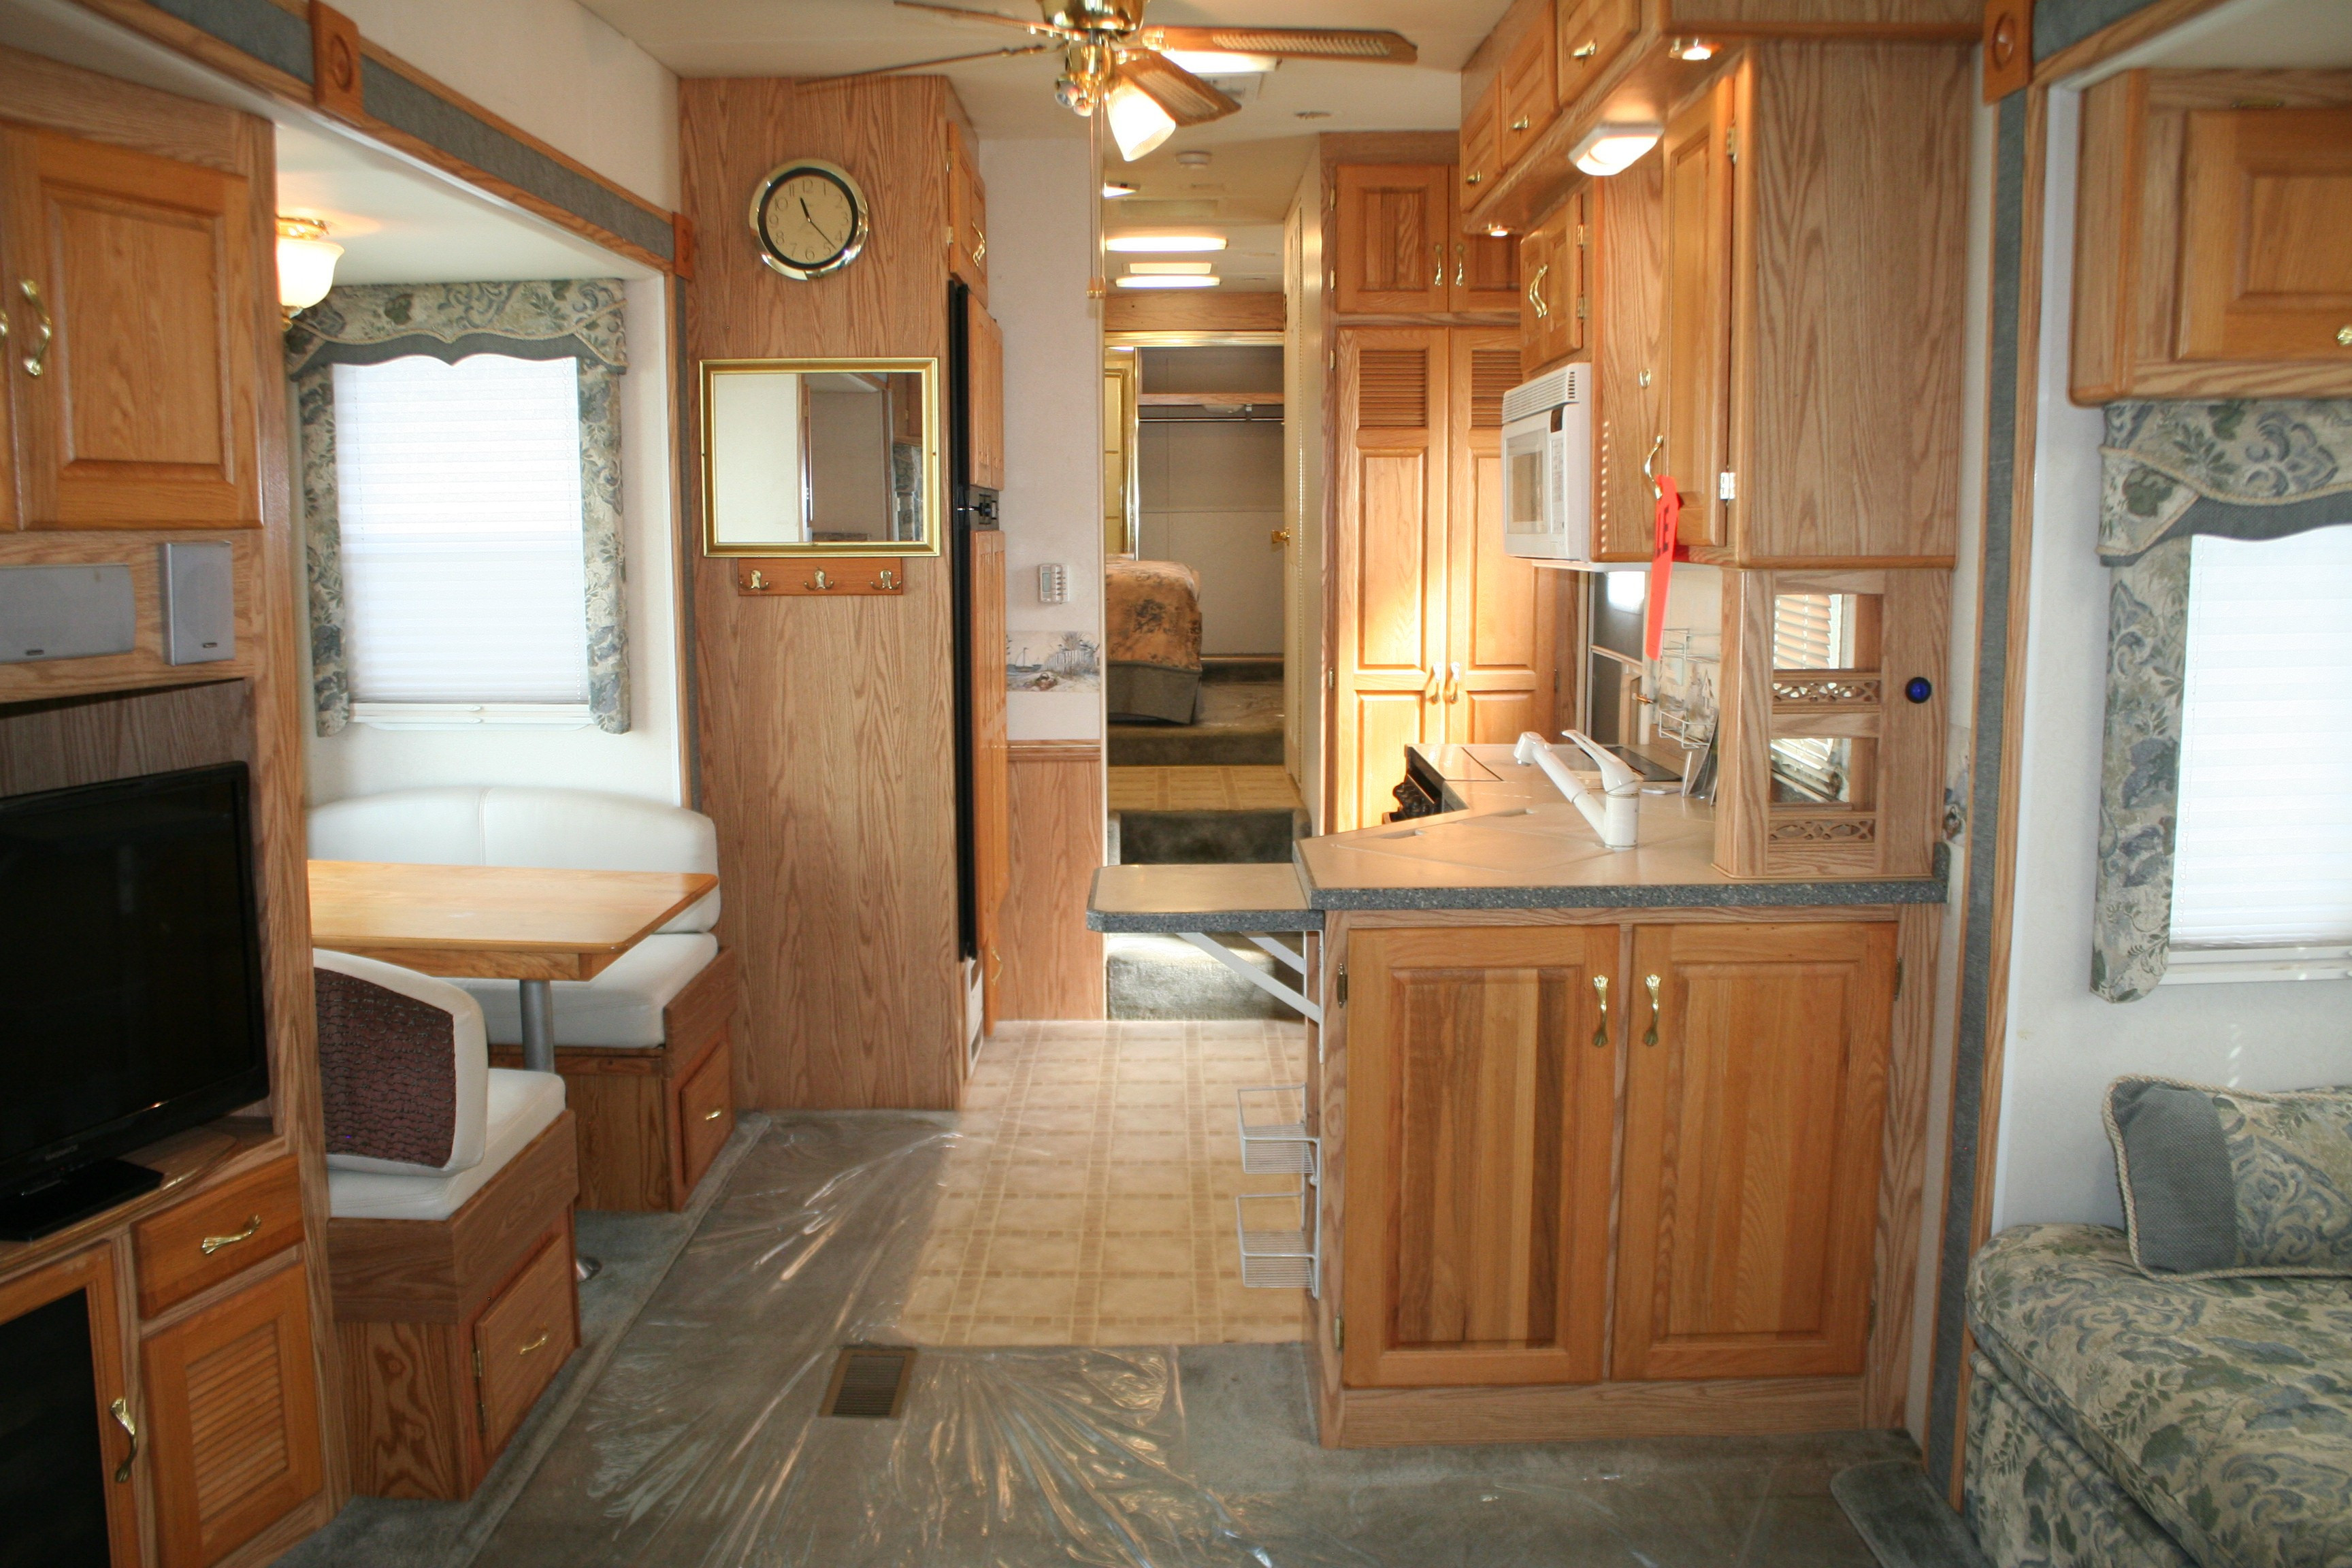 Heartland Hardwood Flooring Knoxville Of Used 2003 Holiday Rambler Presidential 34skt Fifth Wheel Rv In Intended for Click Here for Larger Image